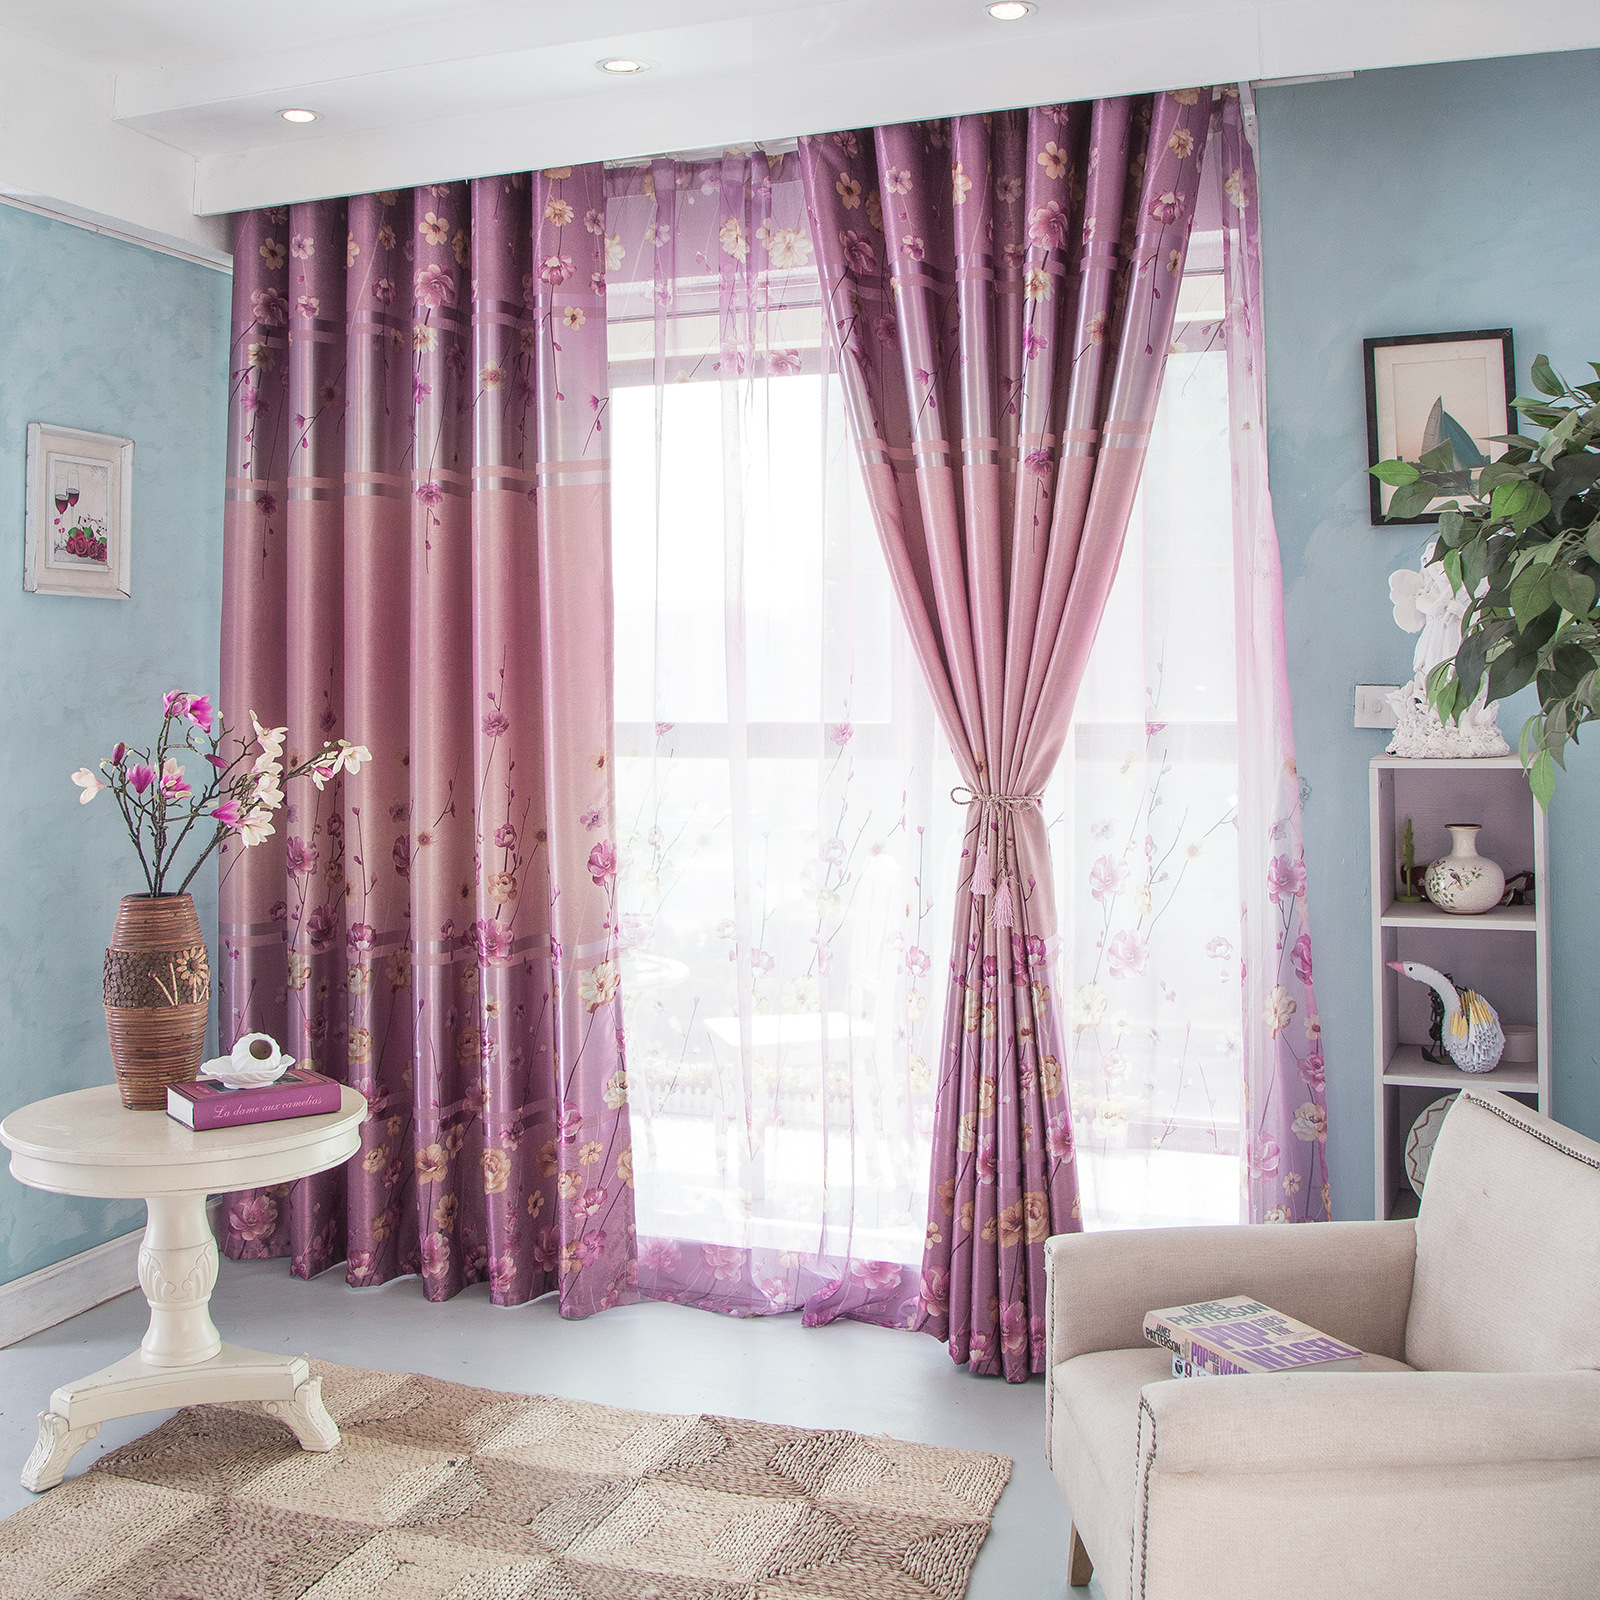 Curtains for bedroom 2016 - Curtains For Living Dining Room Bedroom 2016 New Curtain Living Room Bedroom Rural